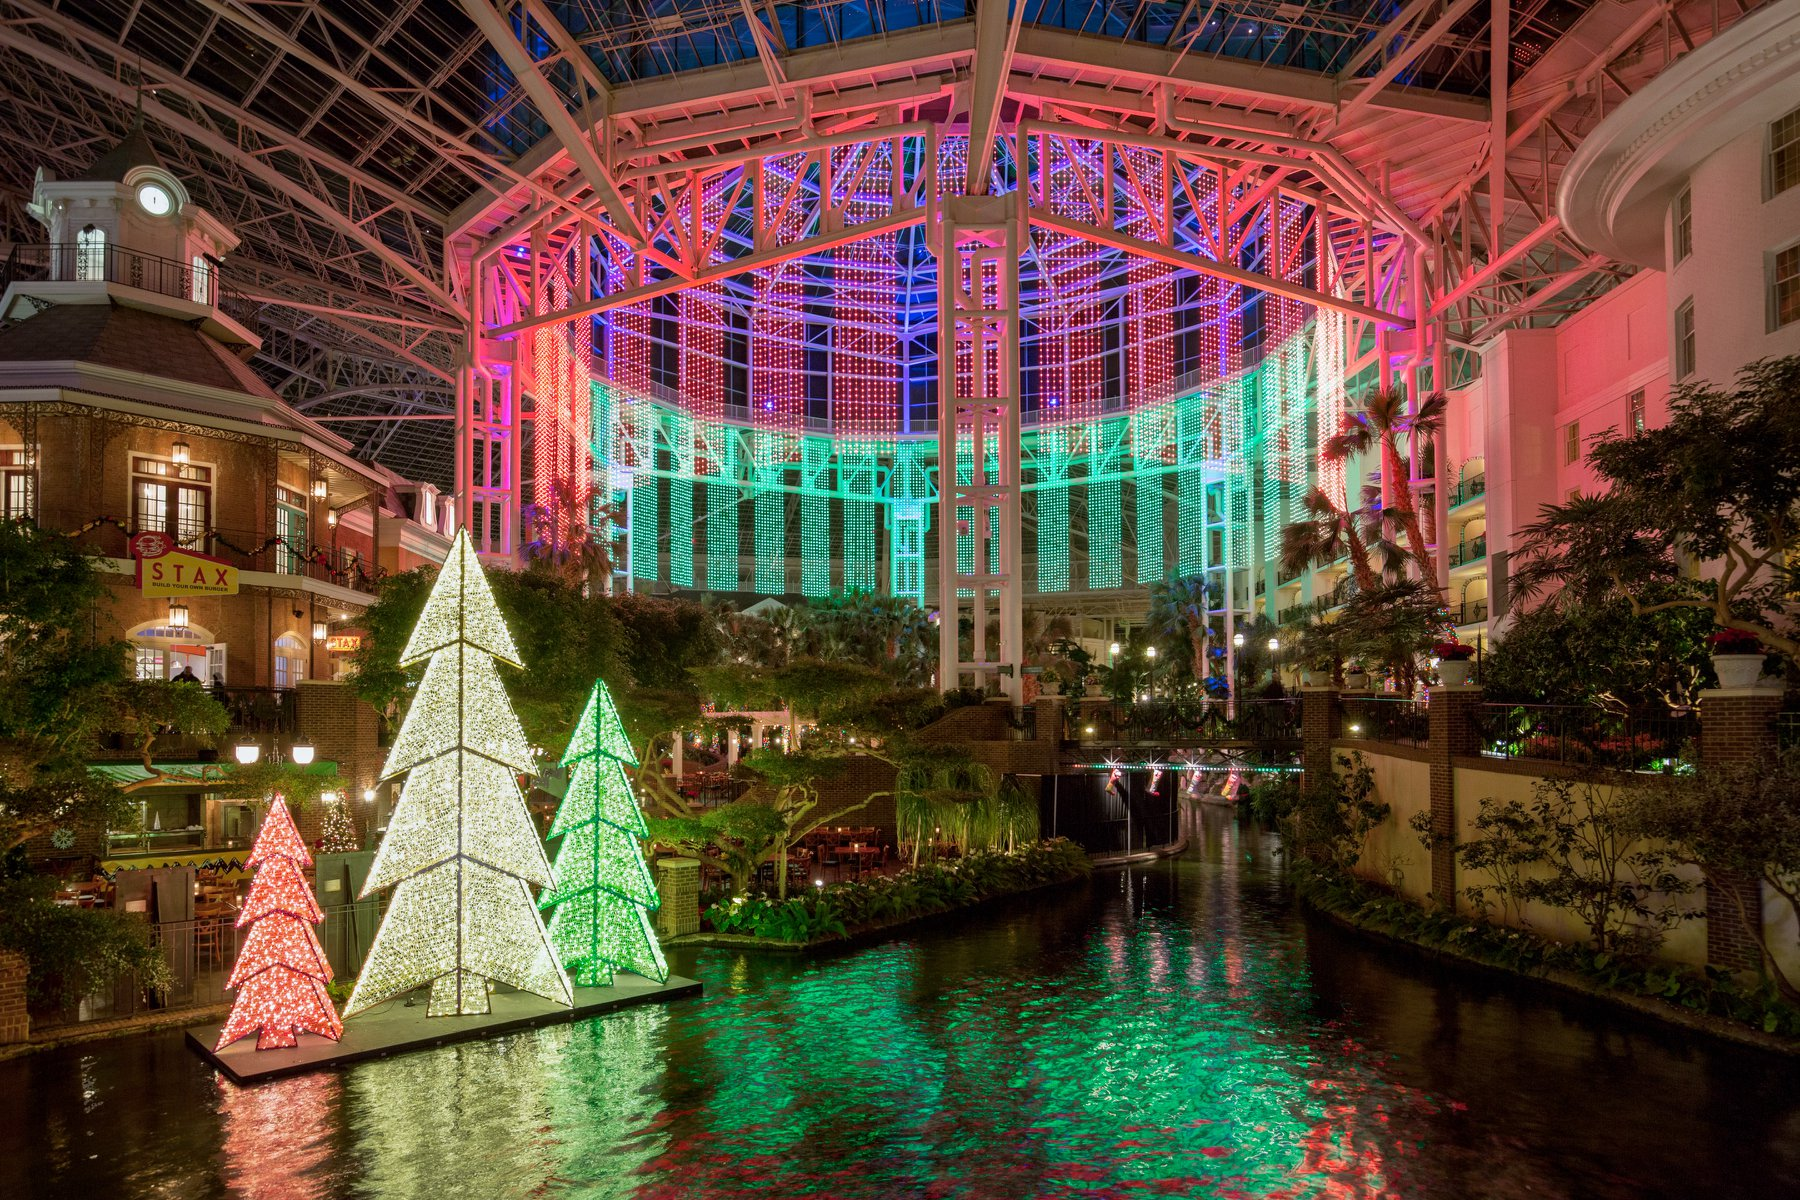 Take A Road Trip To See The Brightest Christmas Lights